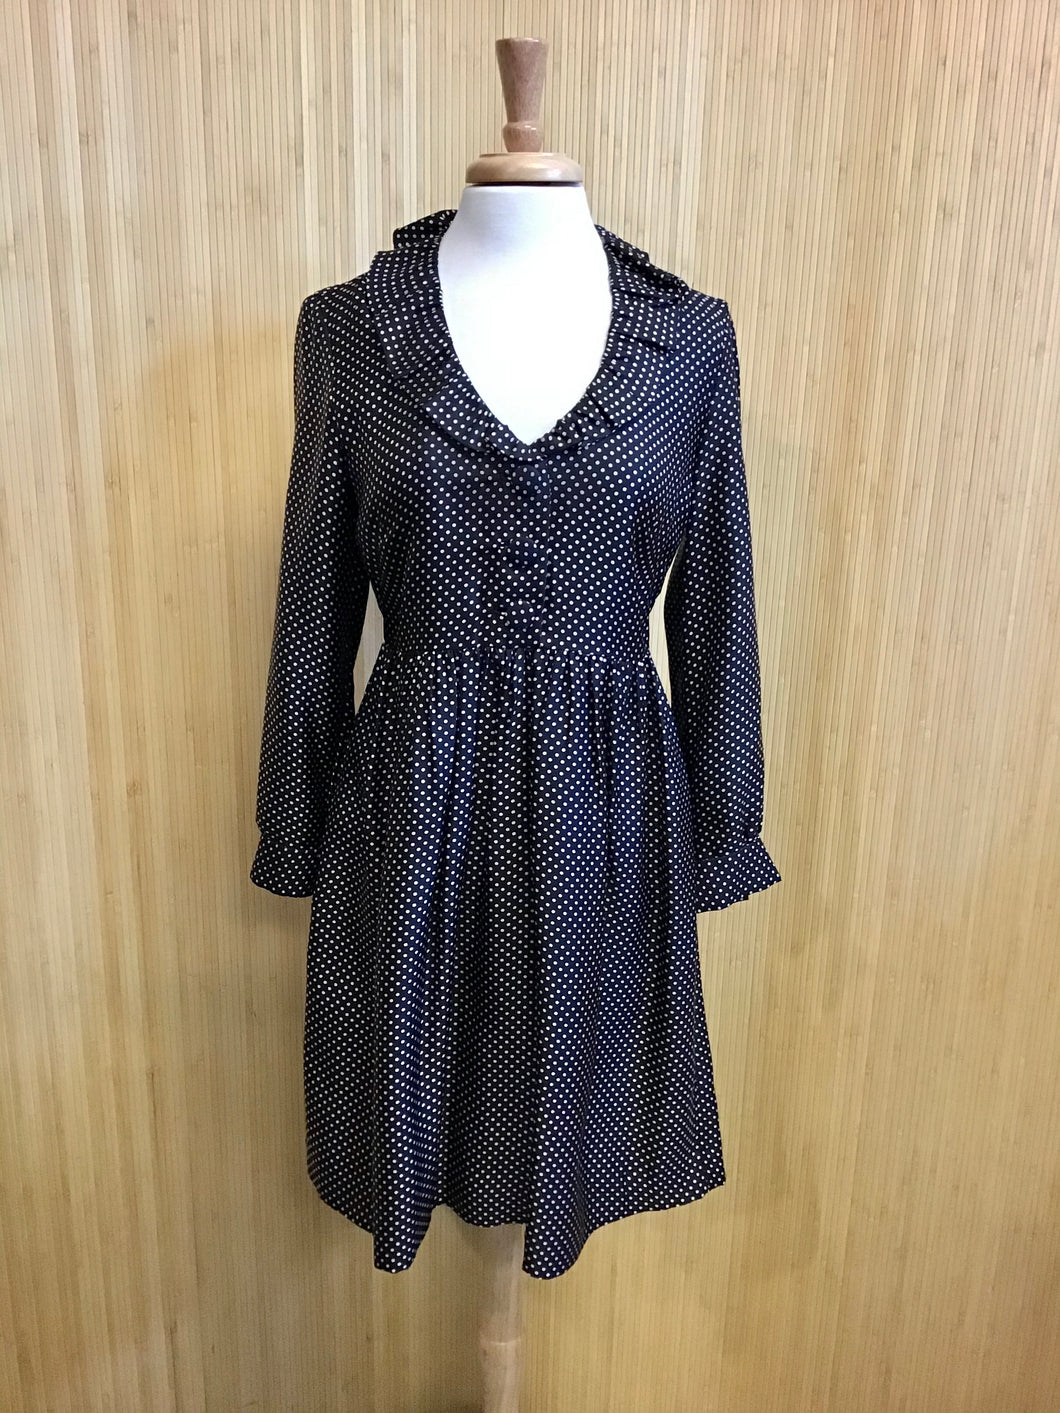 J.Crew Polka Dot Dress (L)